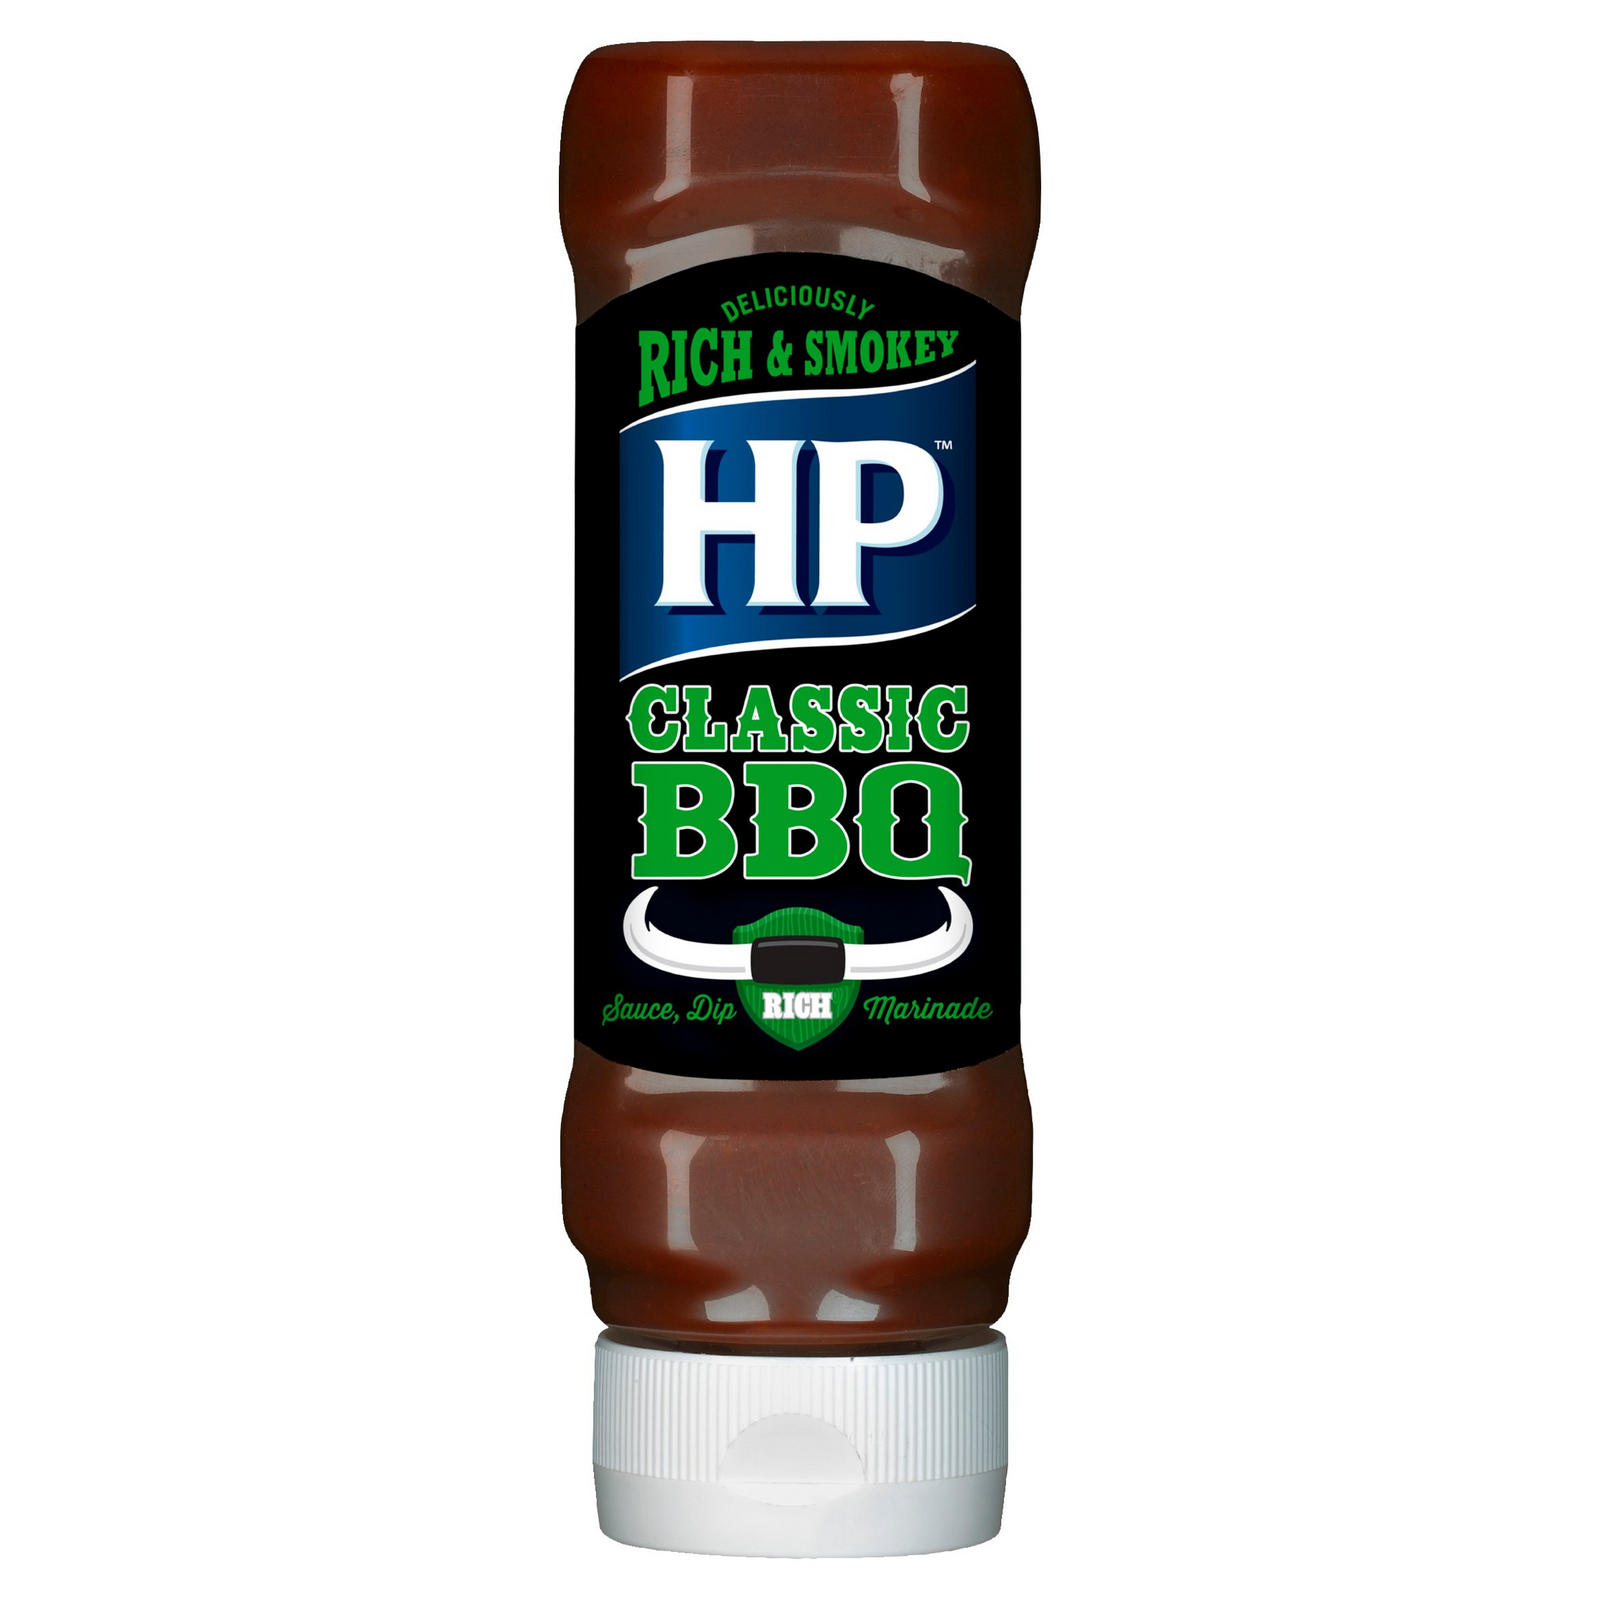 HP Classic BBQ Sauce 465g | Table Sauces, BBQ & Pickles